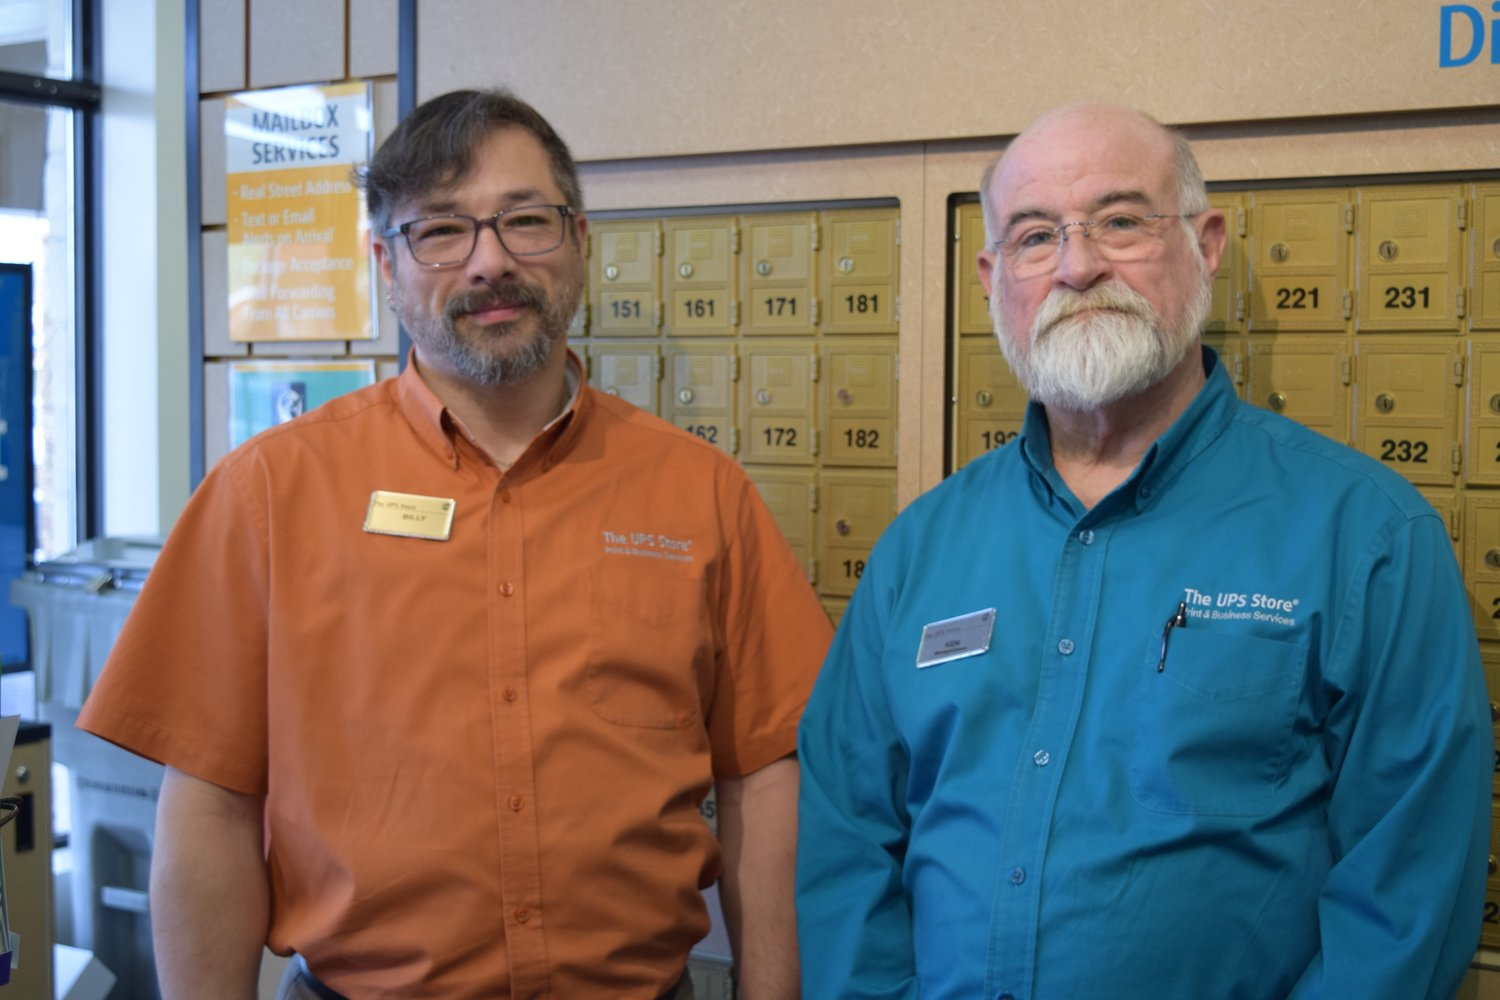 Billy Garver (left) and Ken Musselman (right) are co-owners of The UPS Store in Lakeshore Plaza.